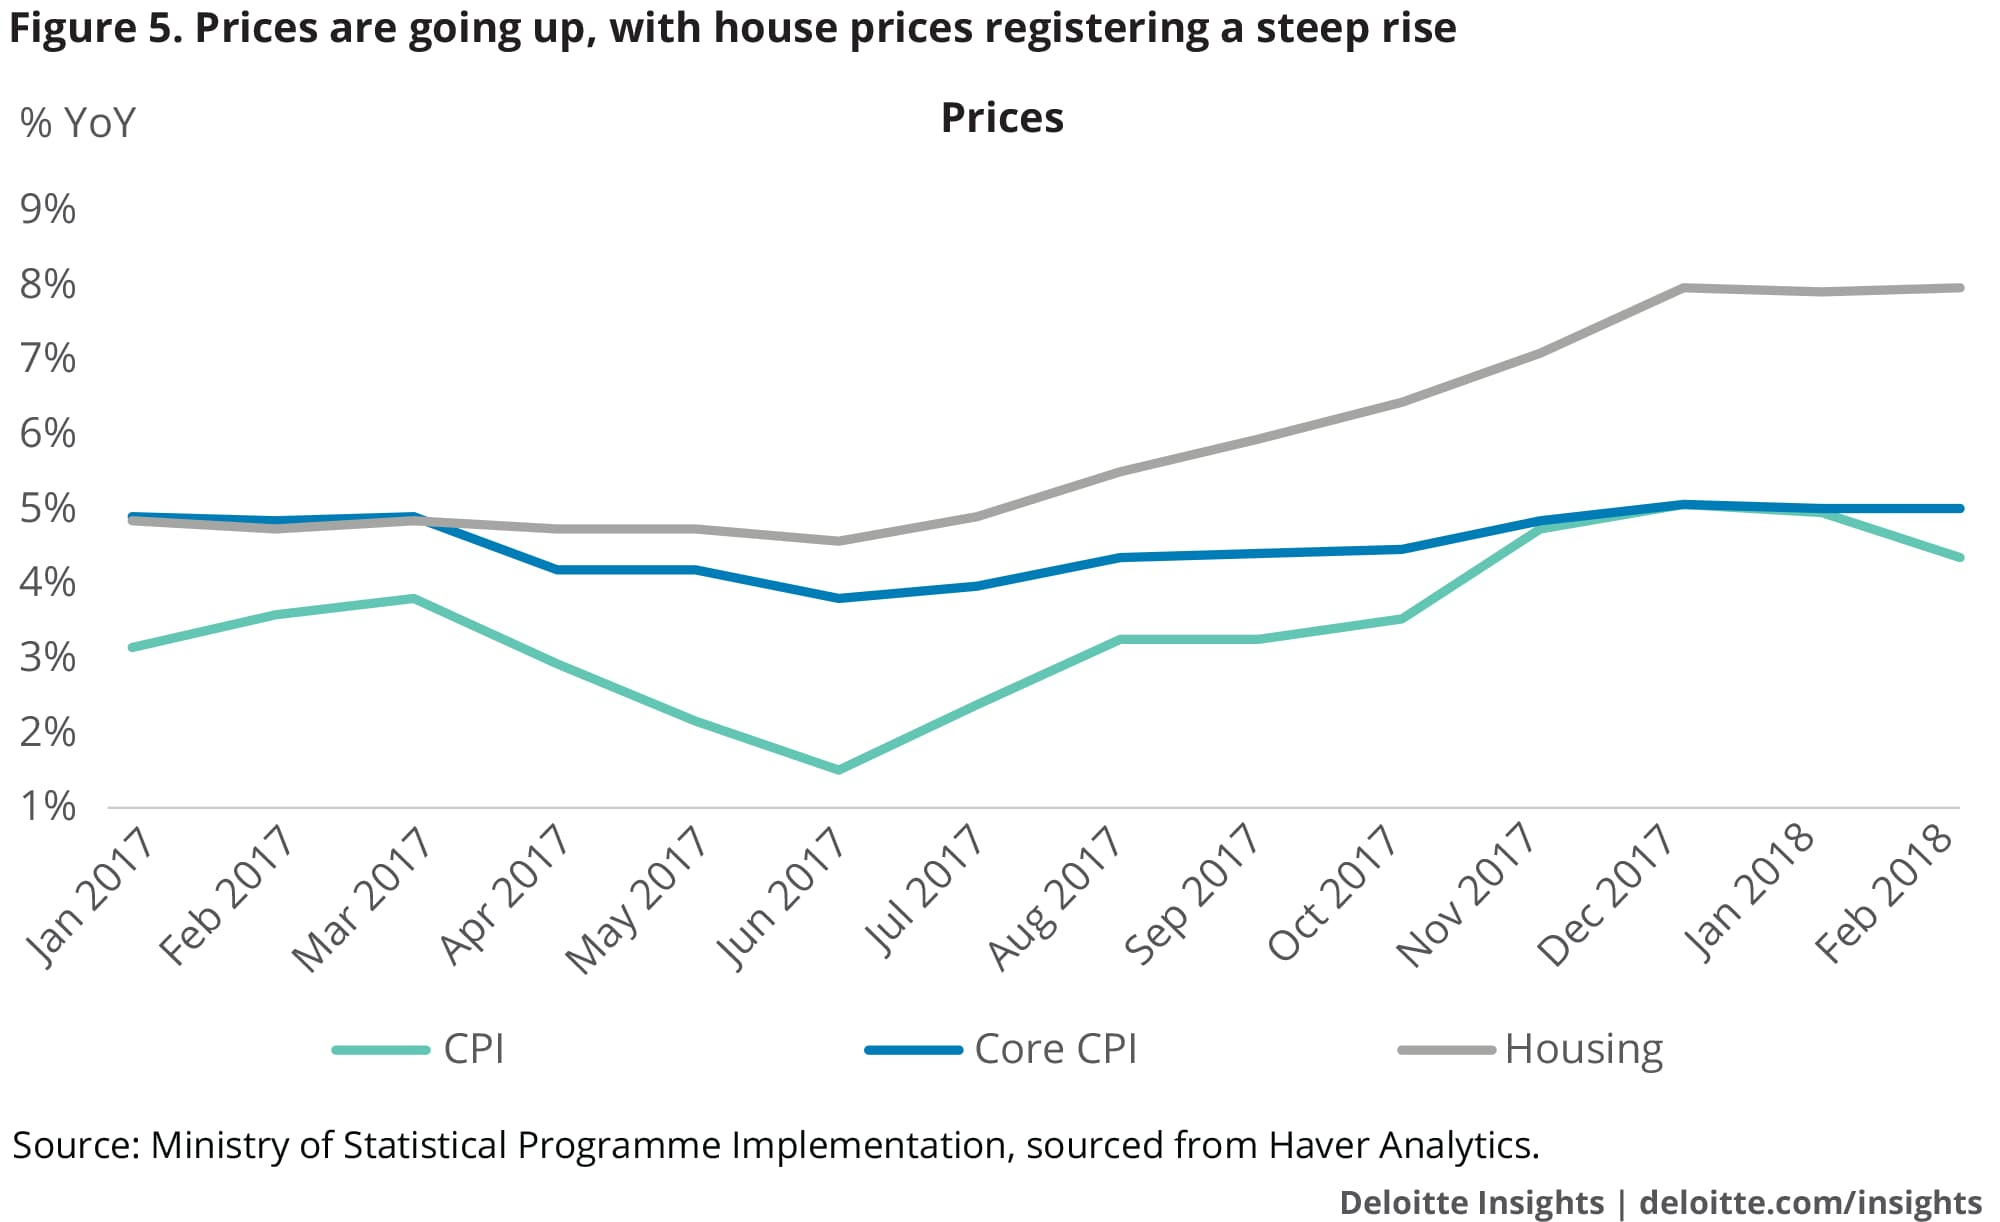 Prices are going up, with house prices registering a steep rise